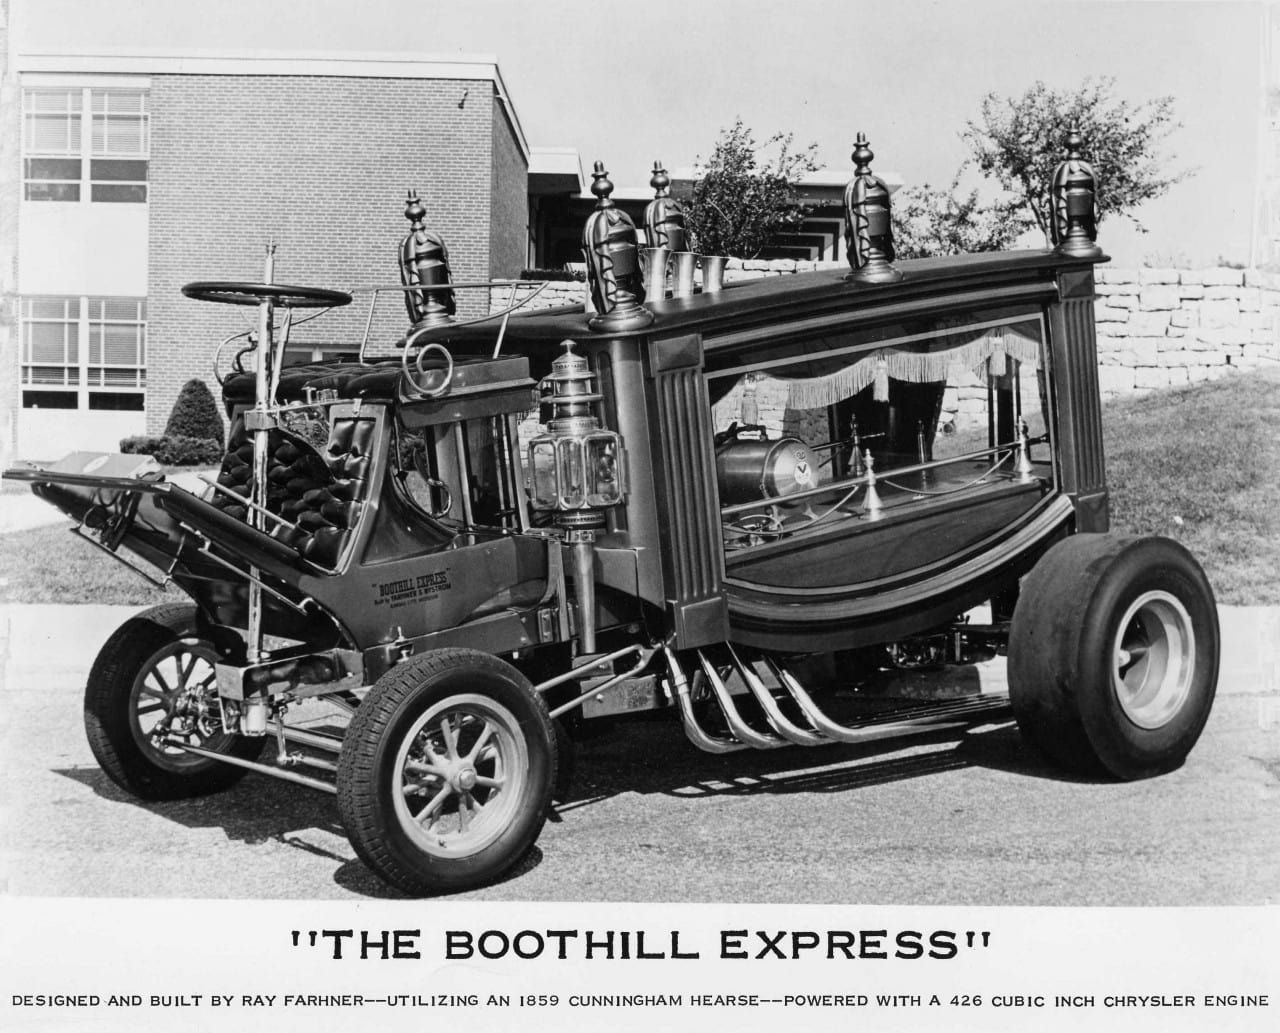 a_boothill-express_039